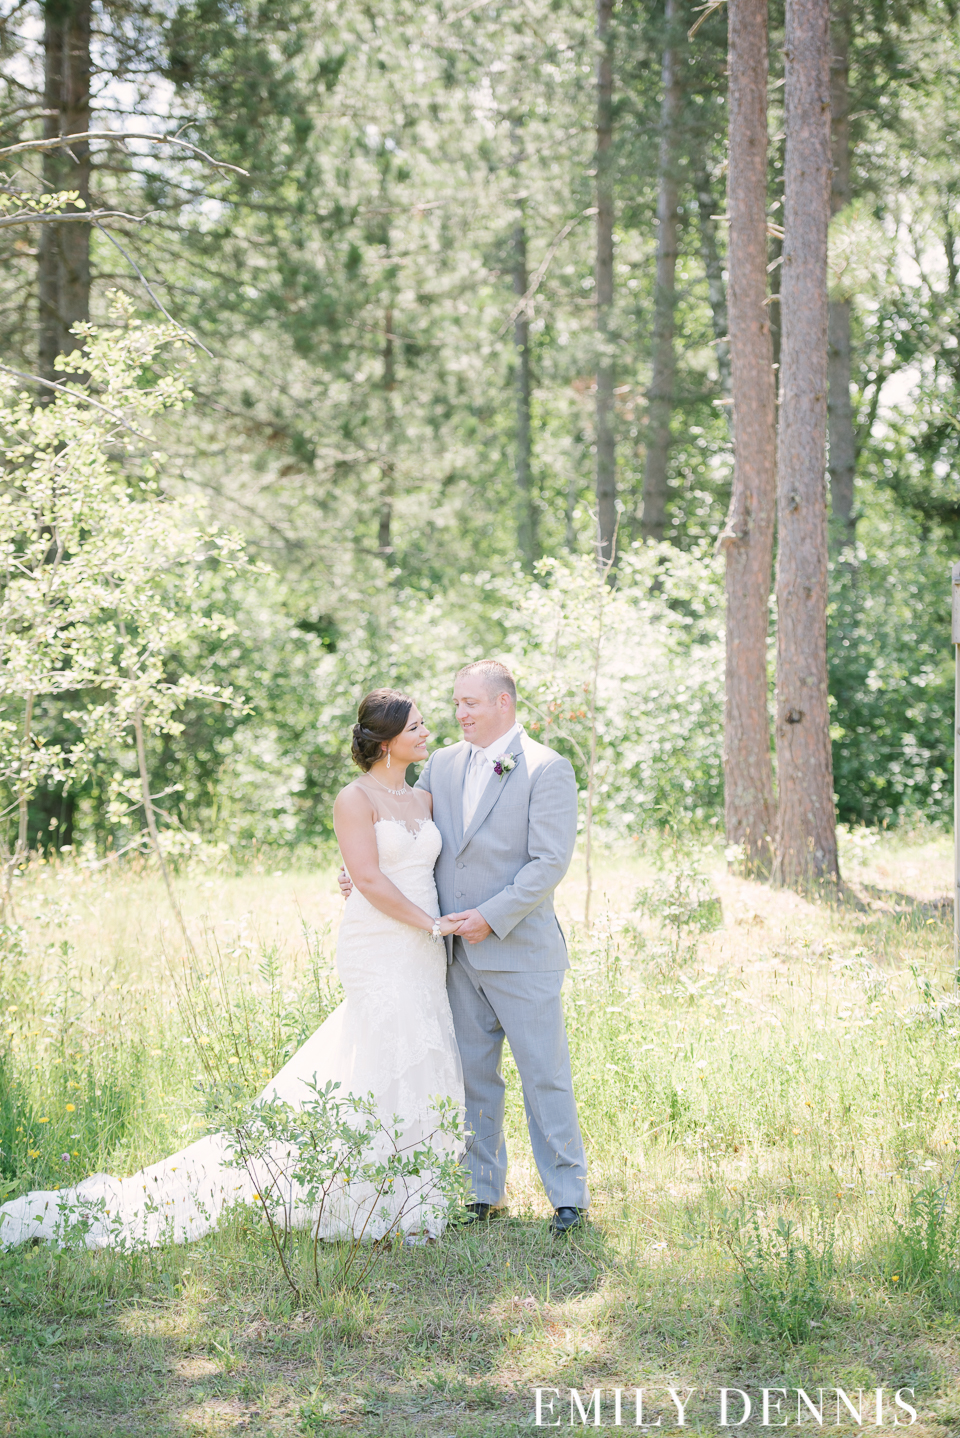 EMILY_DENNIS_PHOTOGRAPHY-59